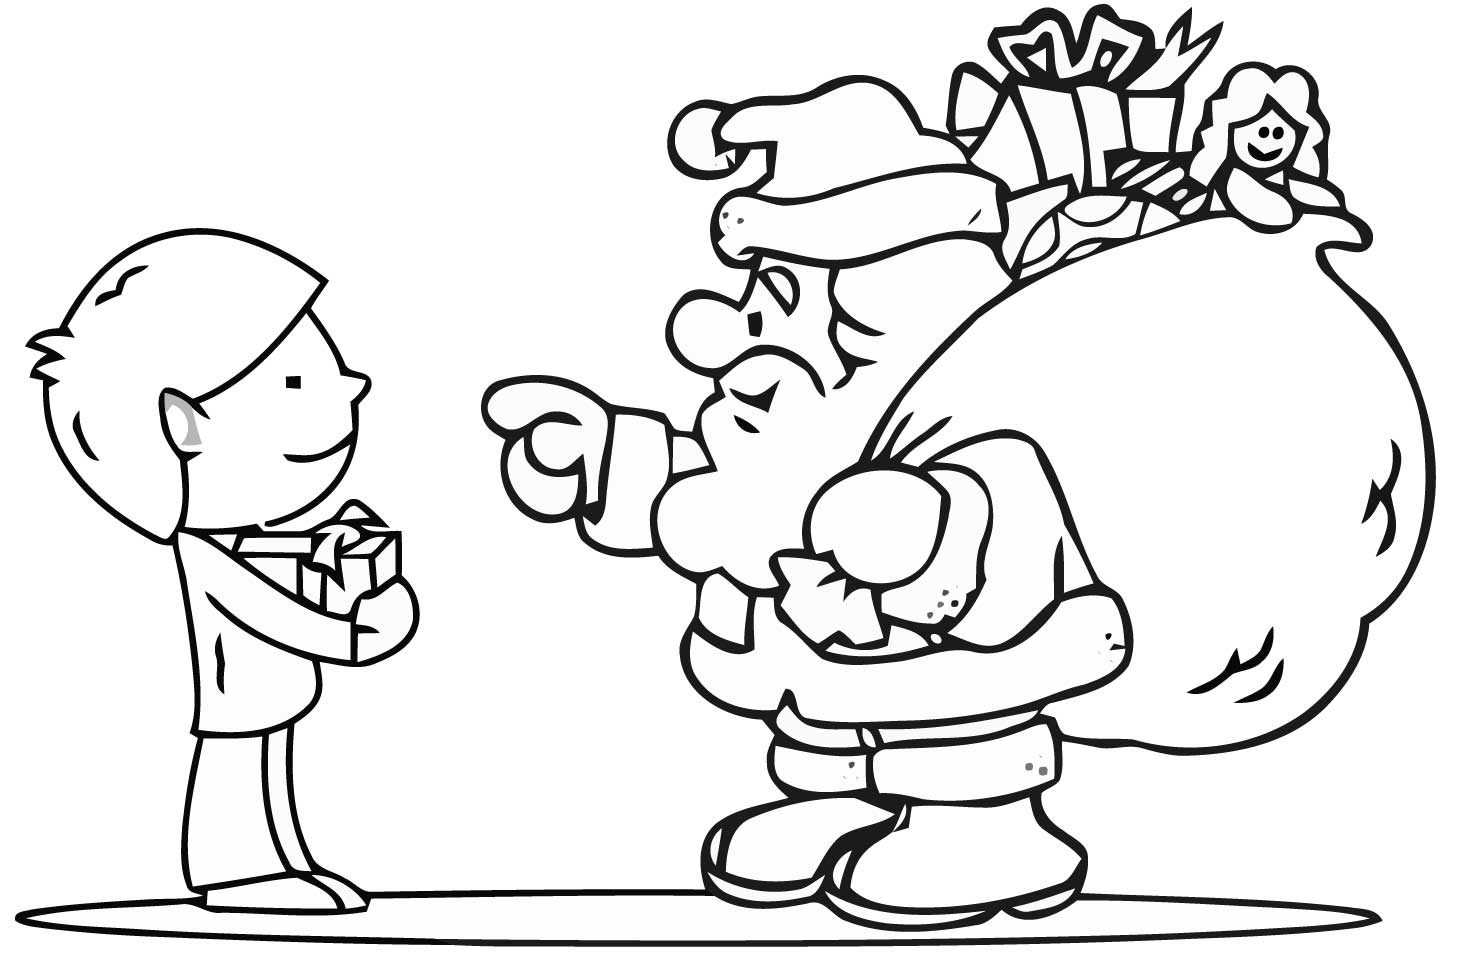 free holiday coloring pages get this adult christmas coloring pages printable hld6 coloring holiday free pages